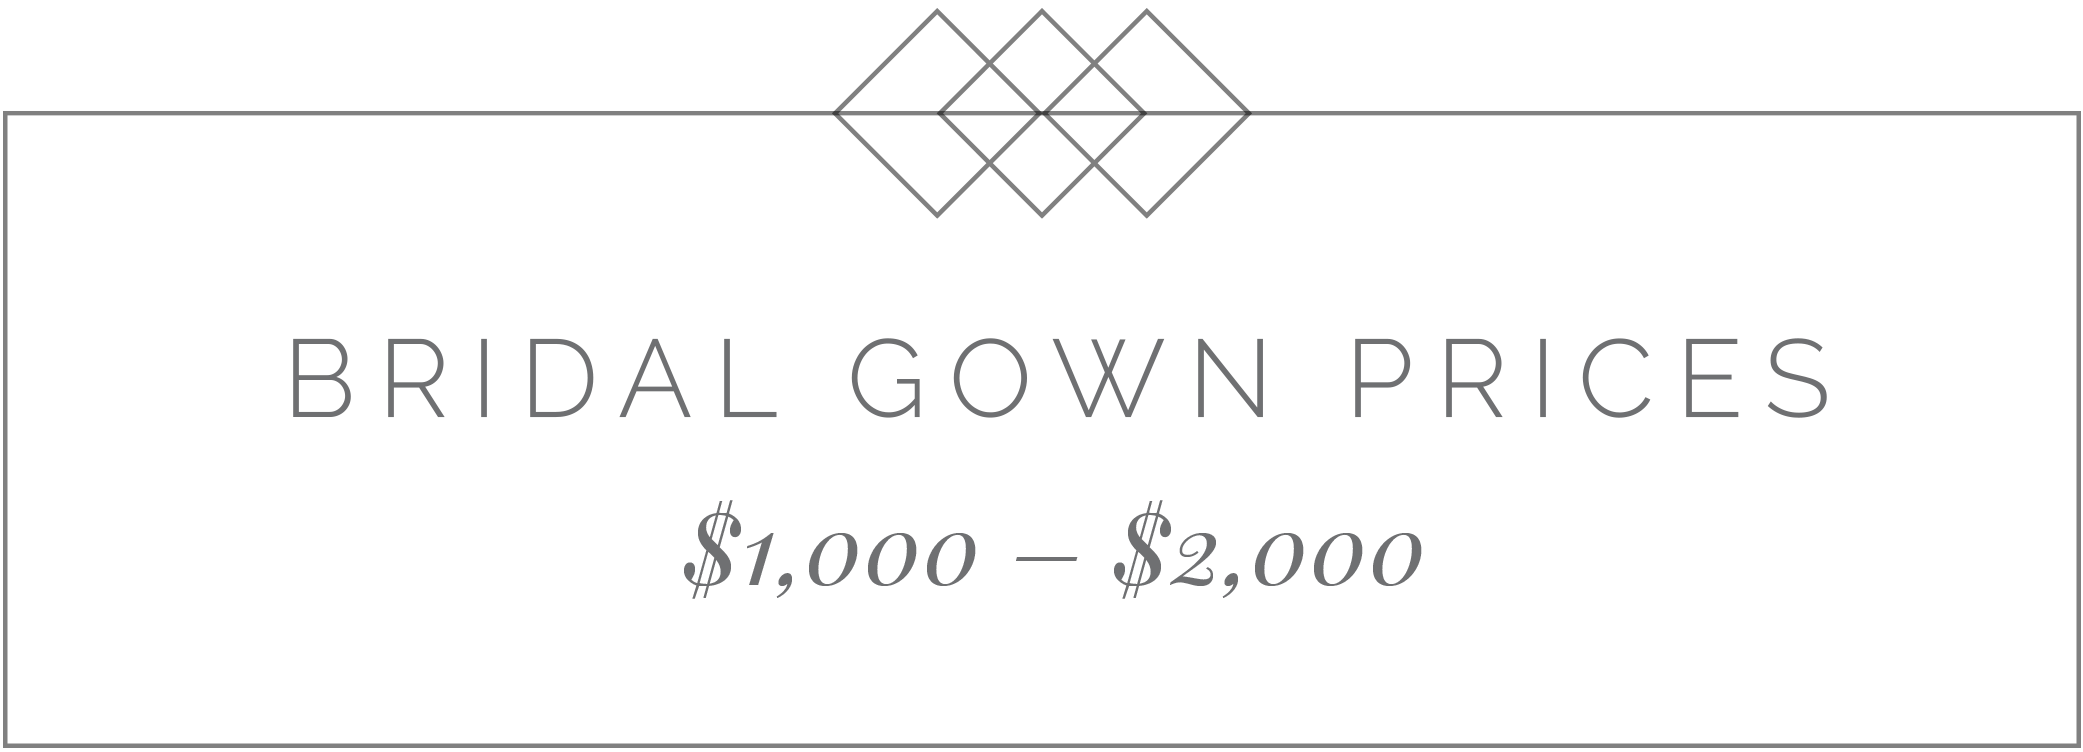 bridal gown prices $1,000-$2,000